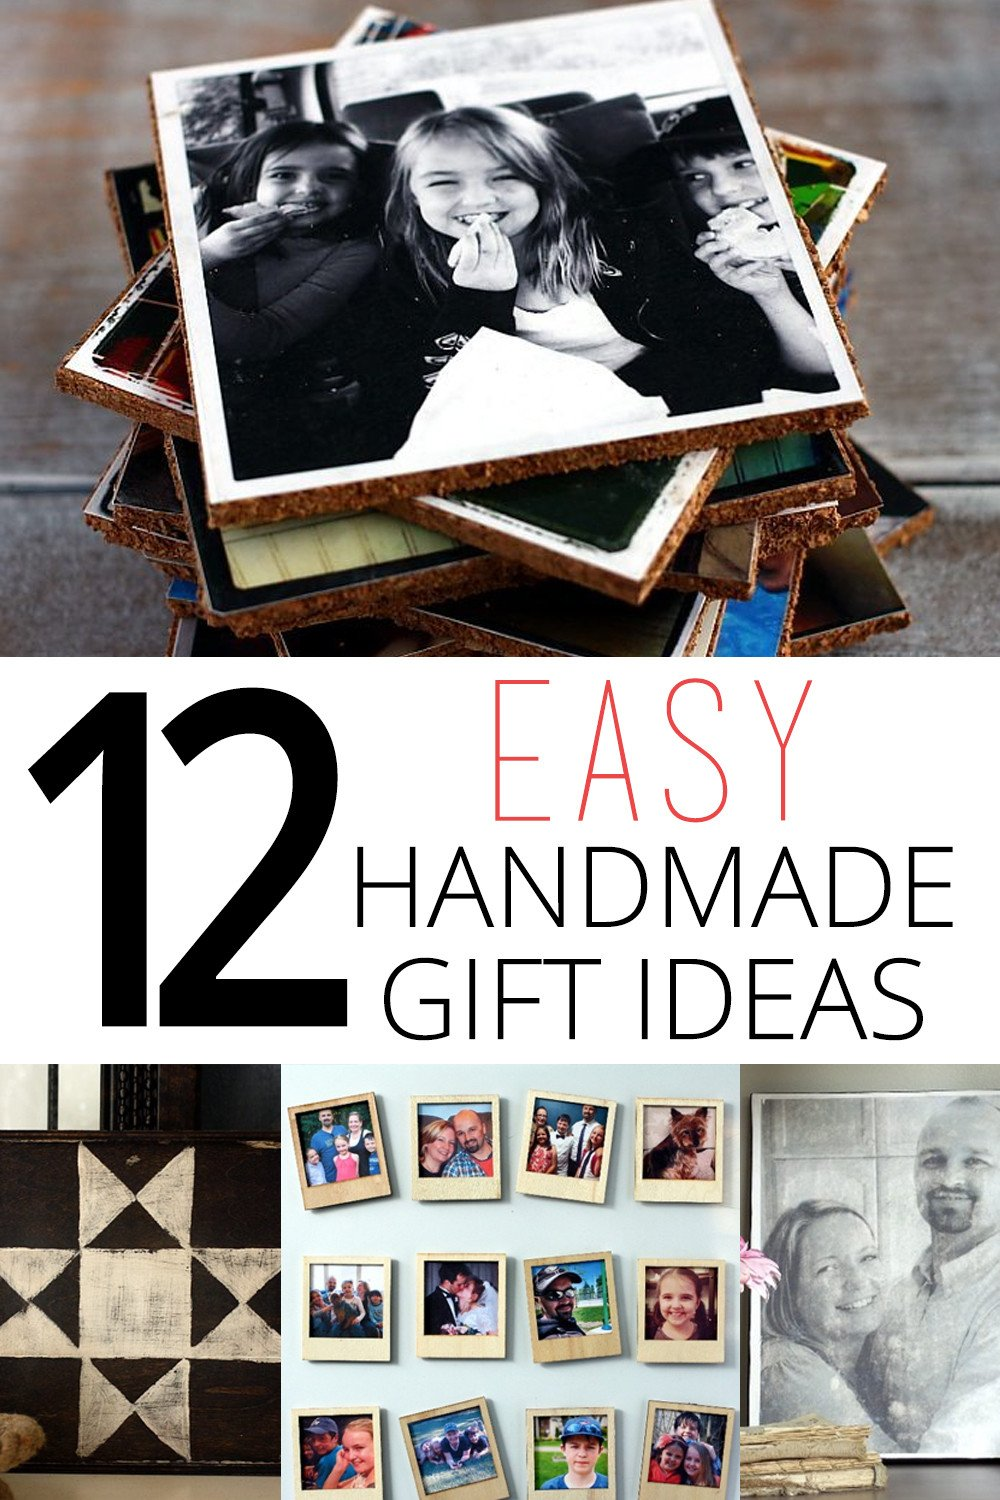 12 easy handmade gift ideas